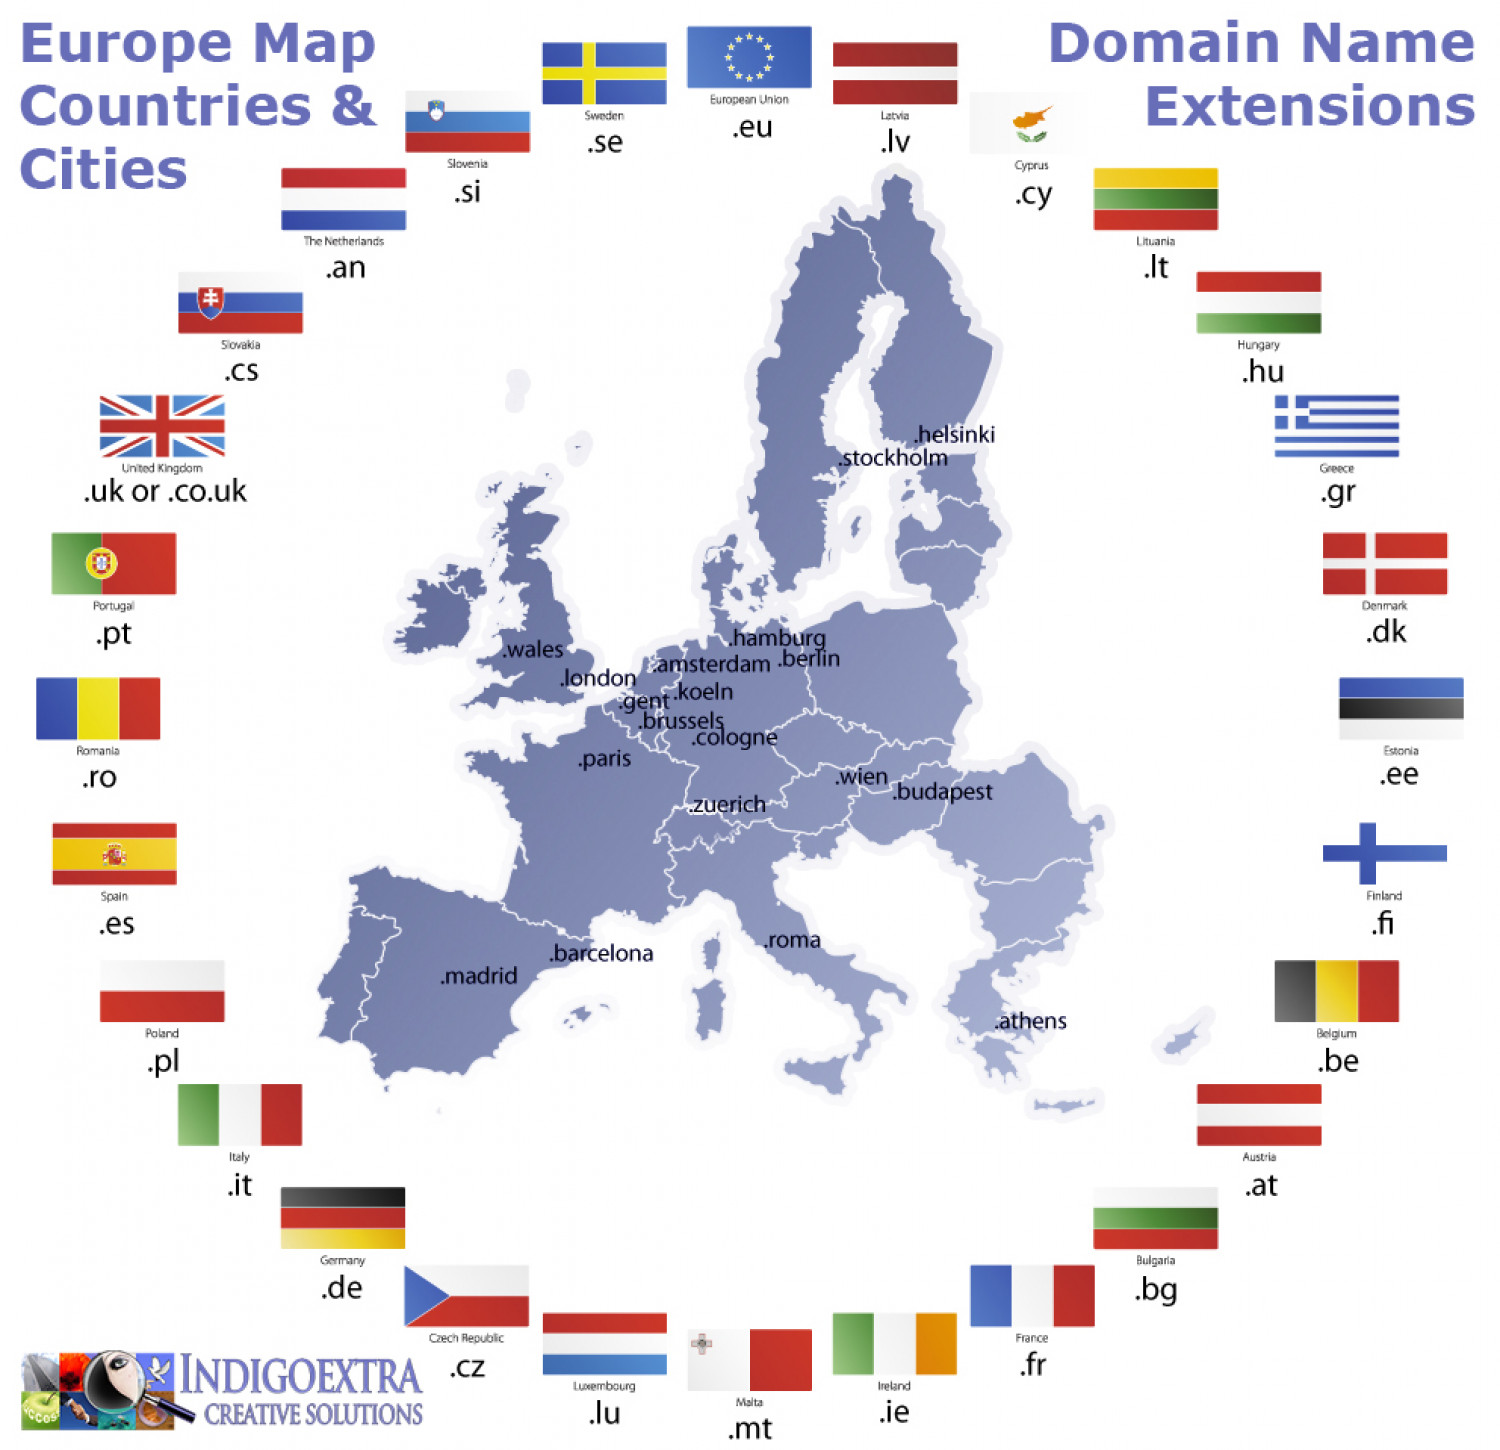 International Domain Extensions Map Of Europe Visual Ly